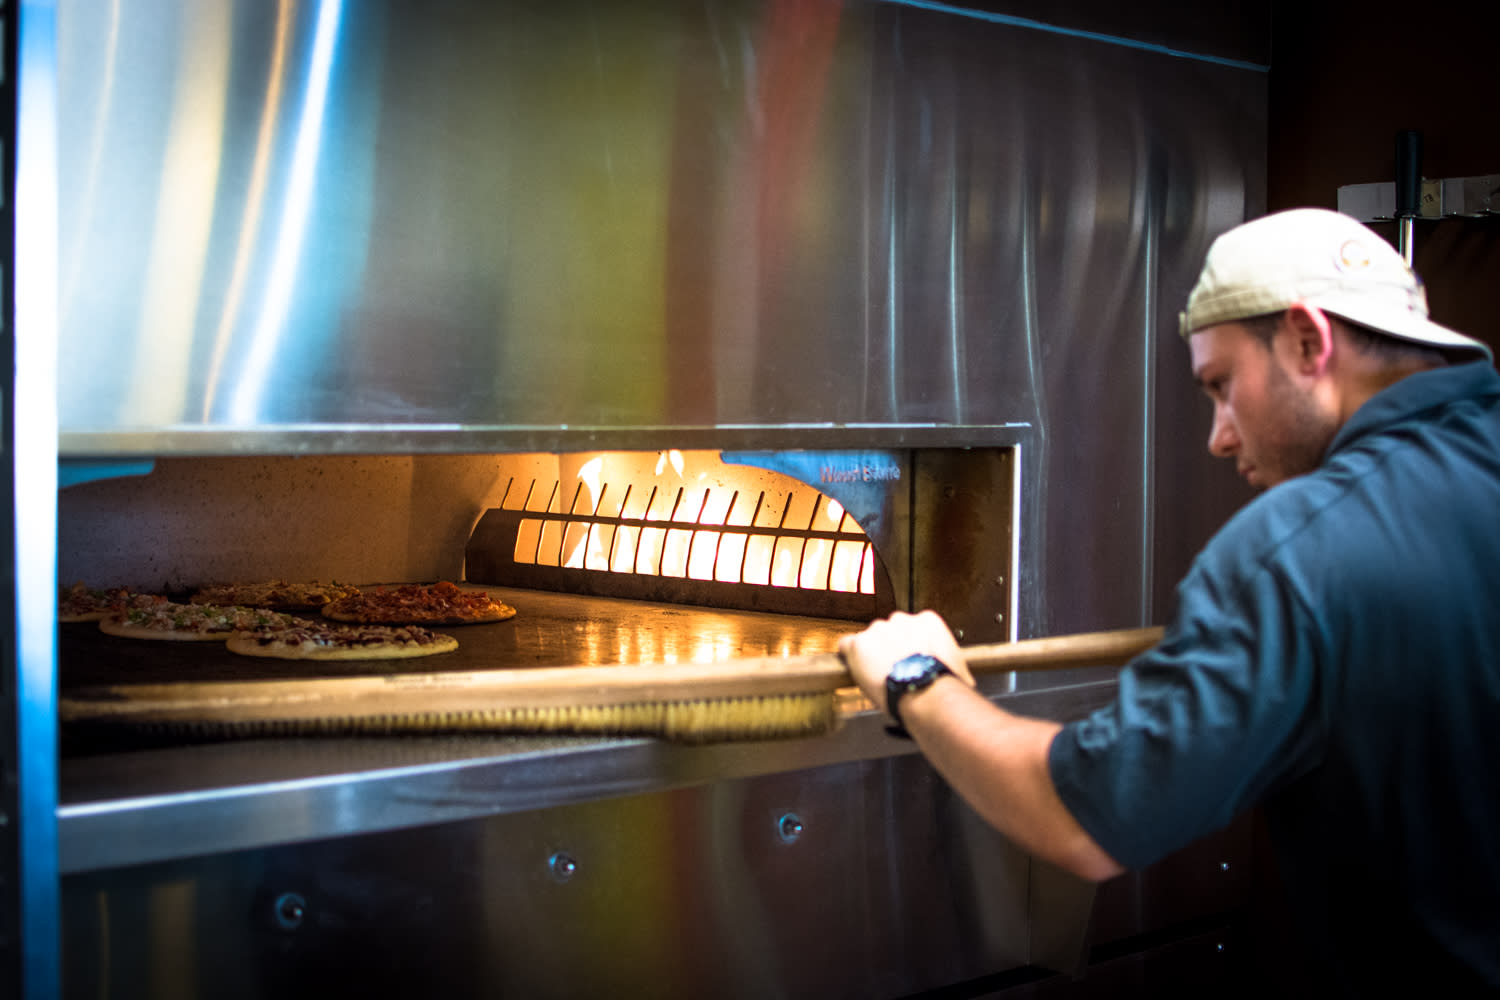 Employee making oven-fired pizzas at Pizza Artista in Lafayette, LA